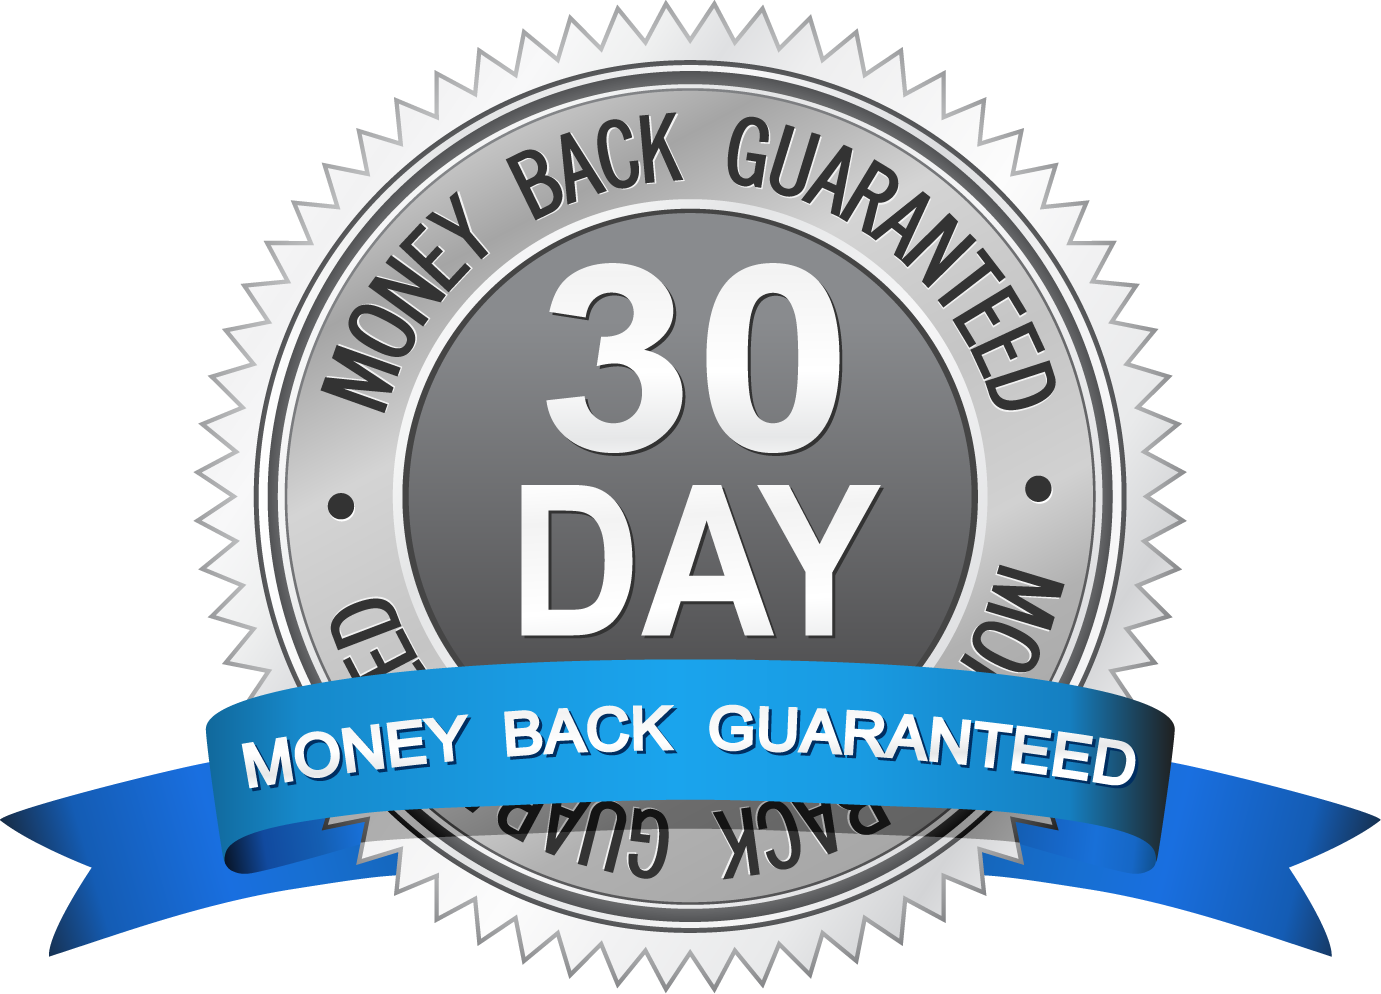 files/30DayMoneyBackGuaranteed_82b5e5c8-a02f-44df-b3db-6ce474d71fa2.png